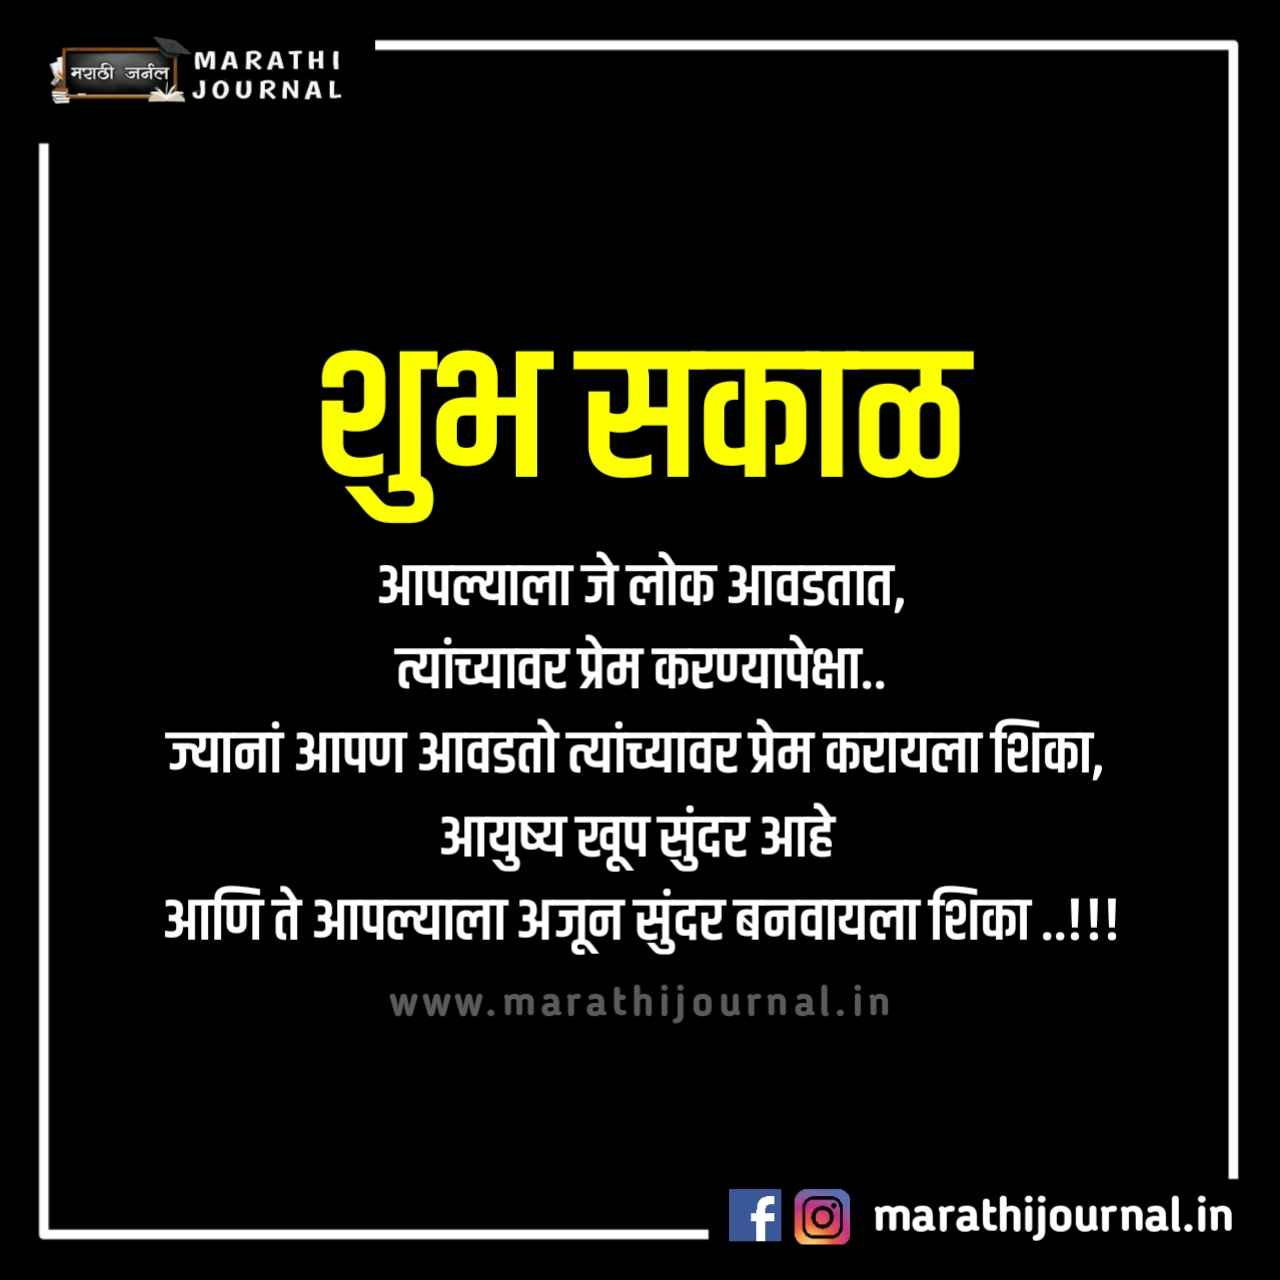 शुभ सकाळ शुभेच्छा | Good Morning Quotes in Marathi | Good Morning Message in Marathi